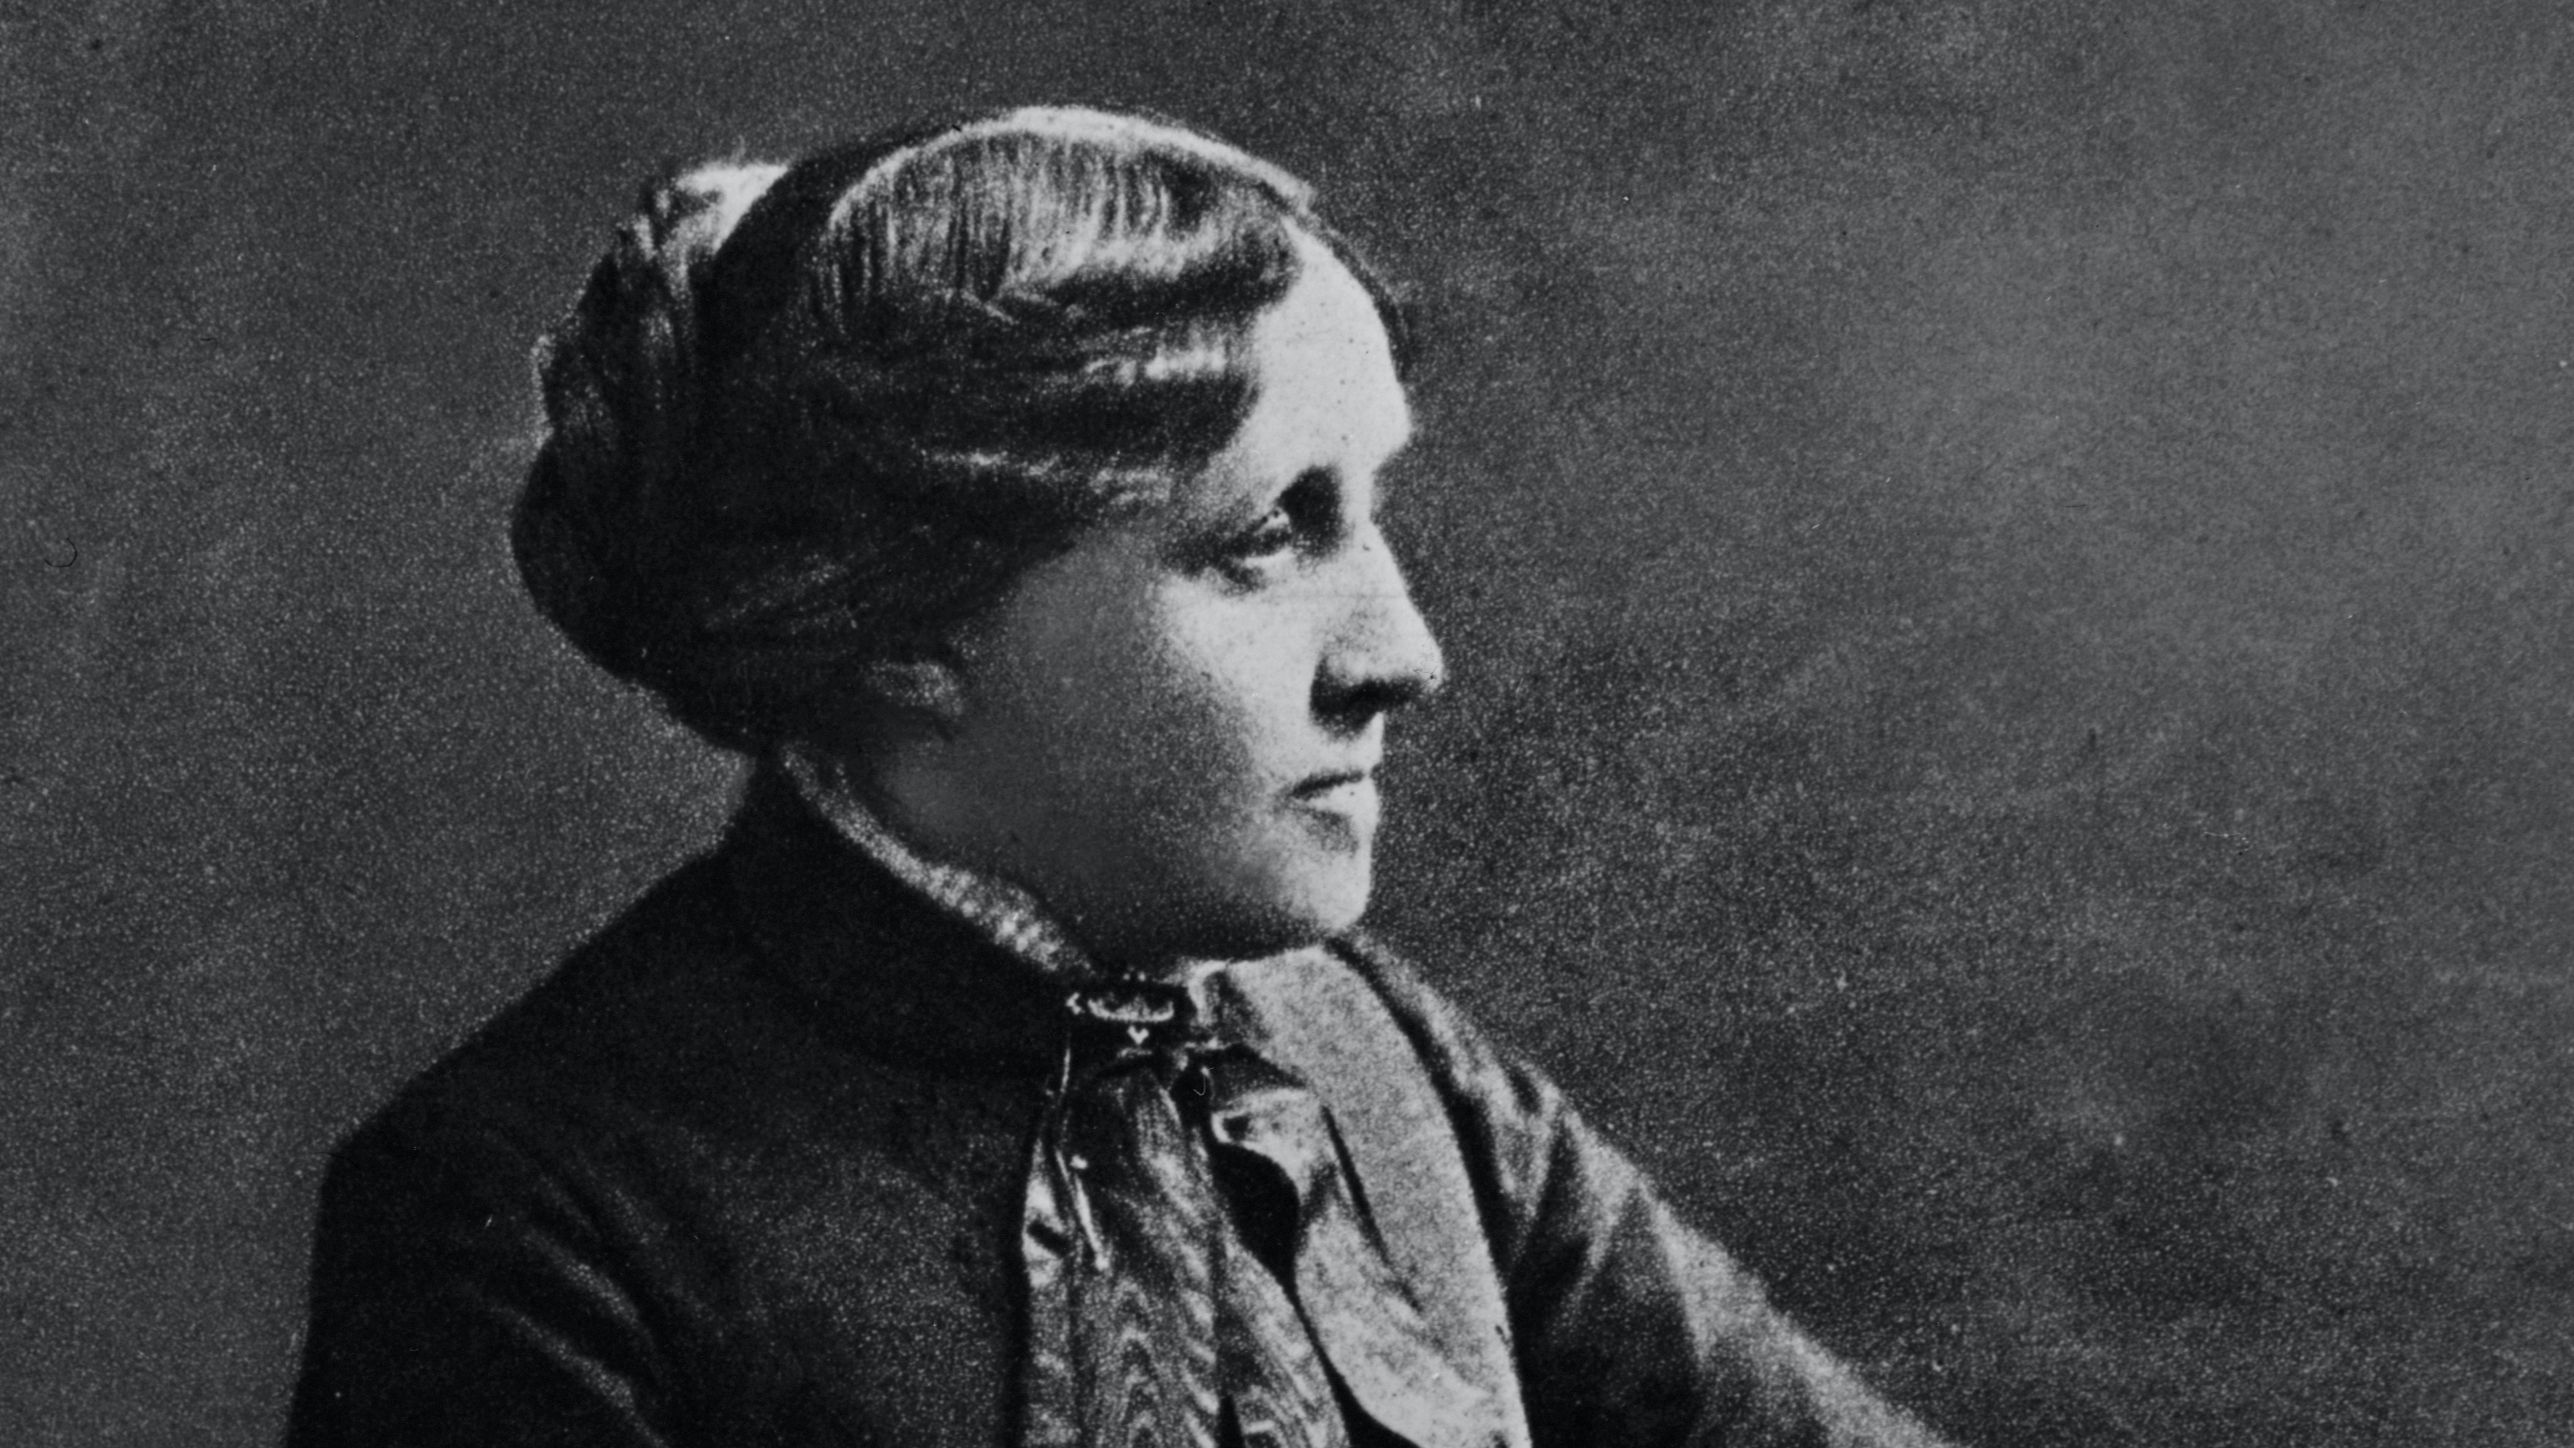 Biography of Louisa May Alcott, American Writer